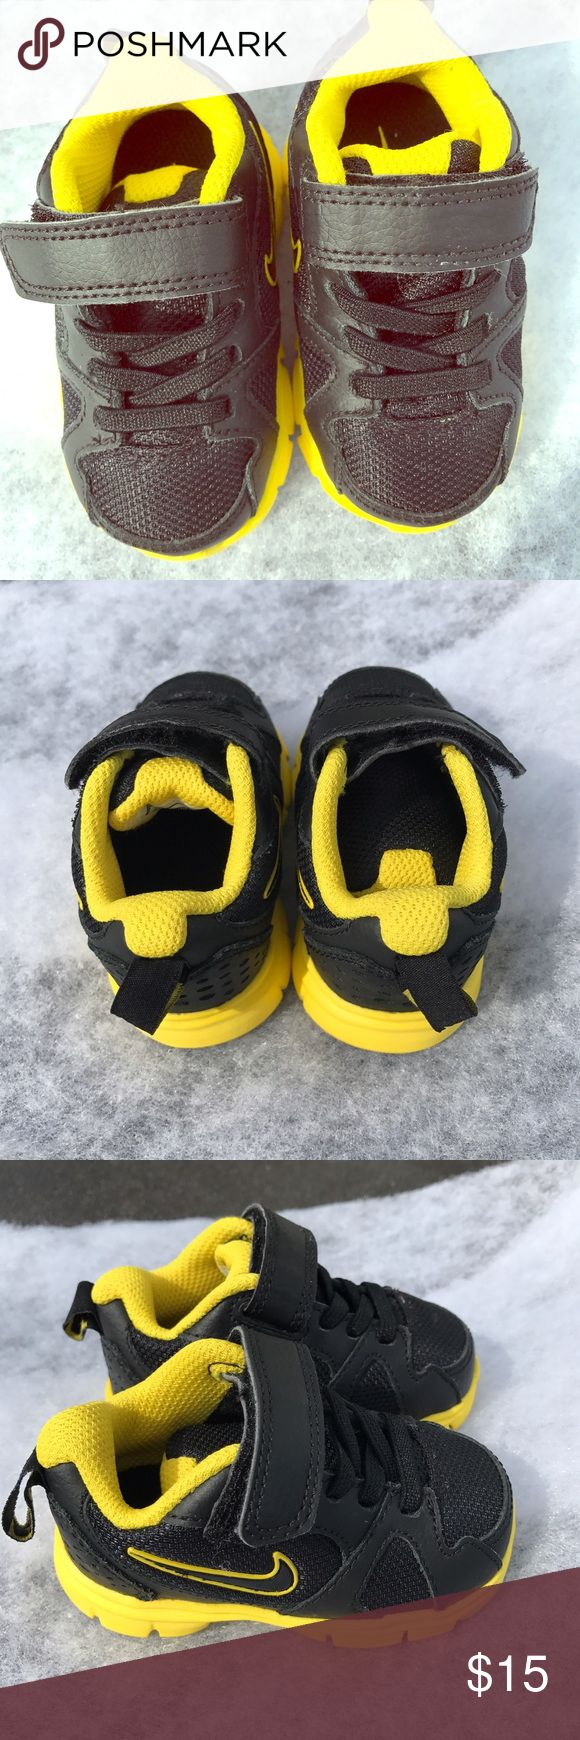 Nike shoe boys 4 Yellow and black Nike shoes size 4 never worn. Like new! Nike Shoes Sneakers